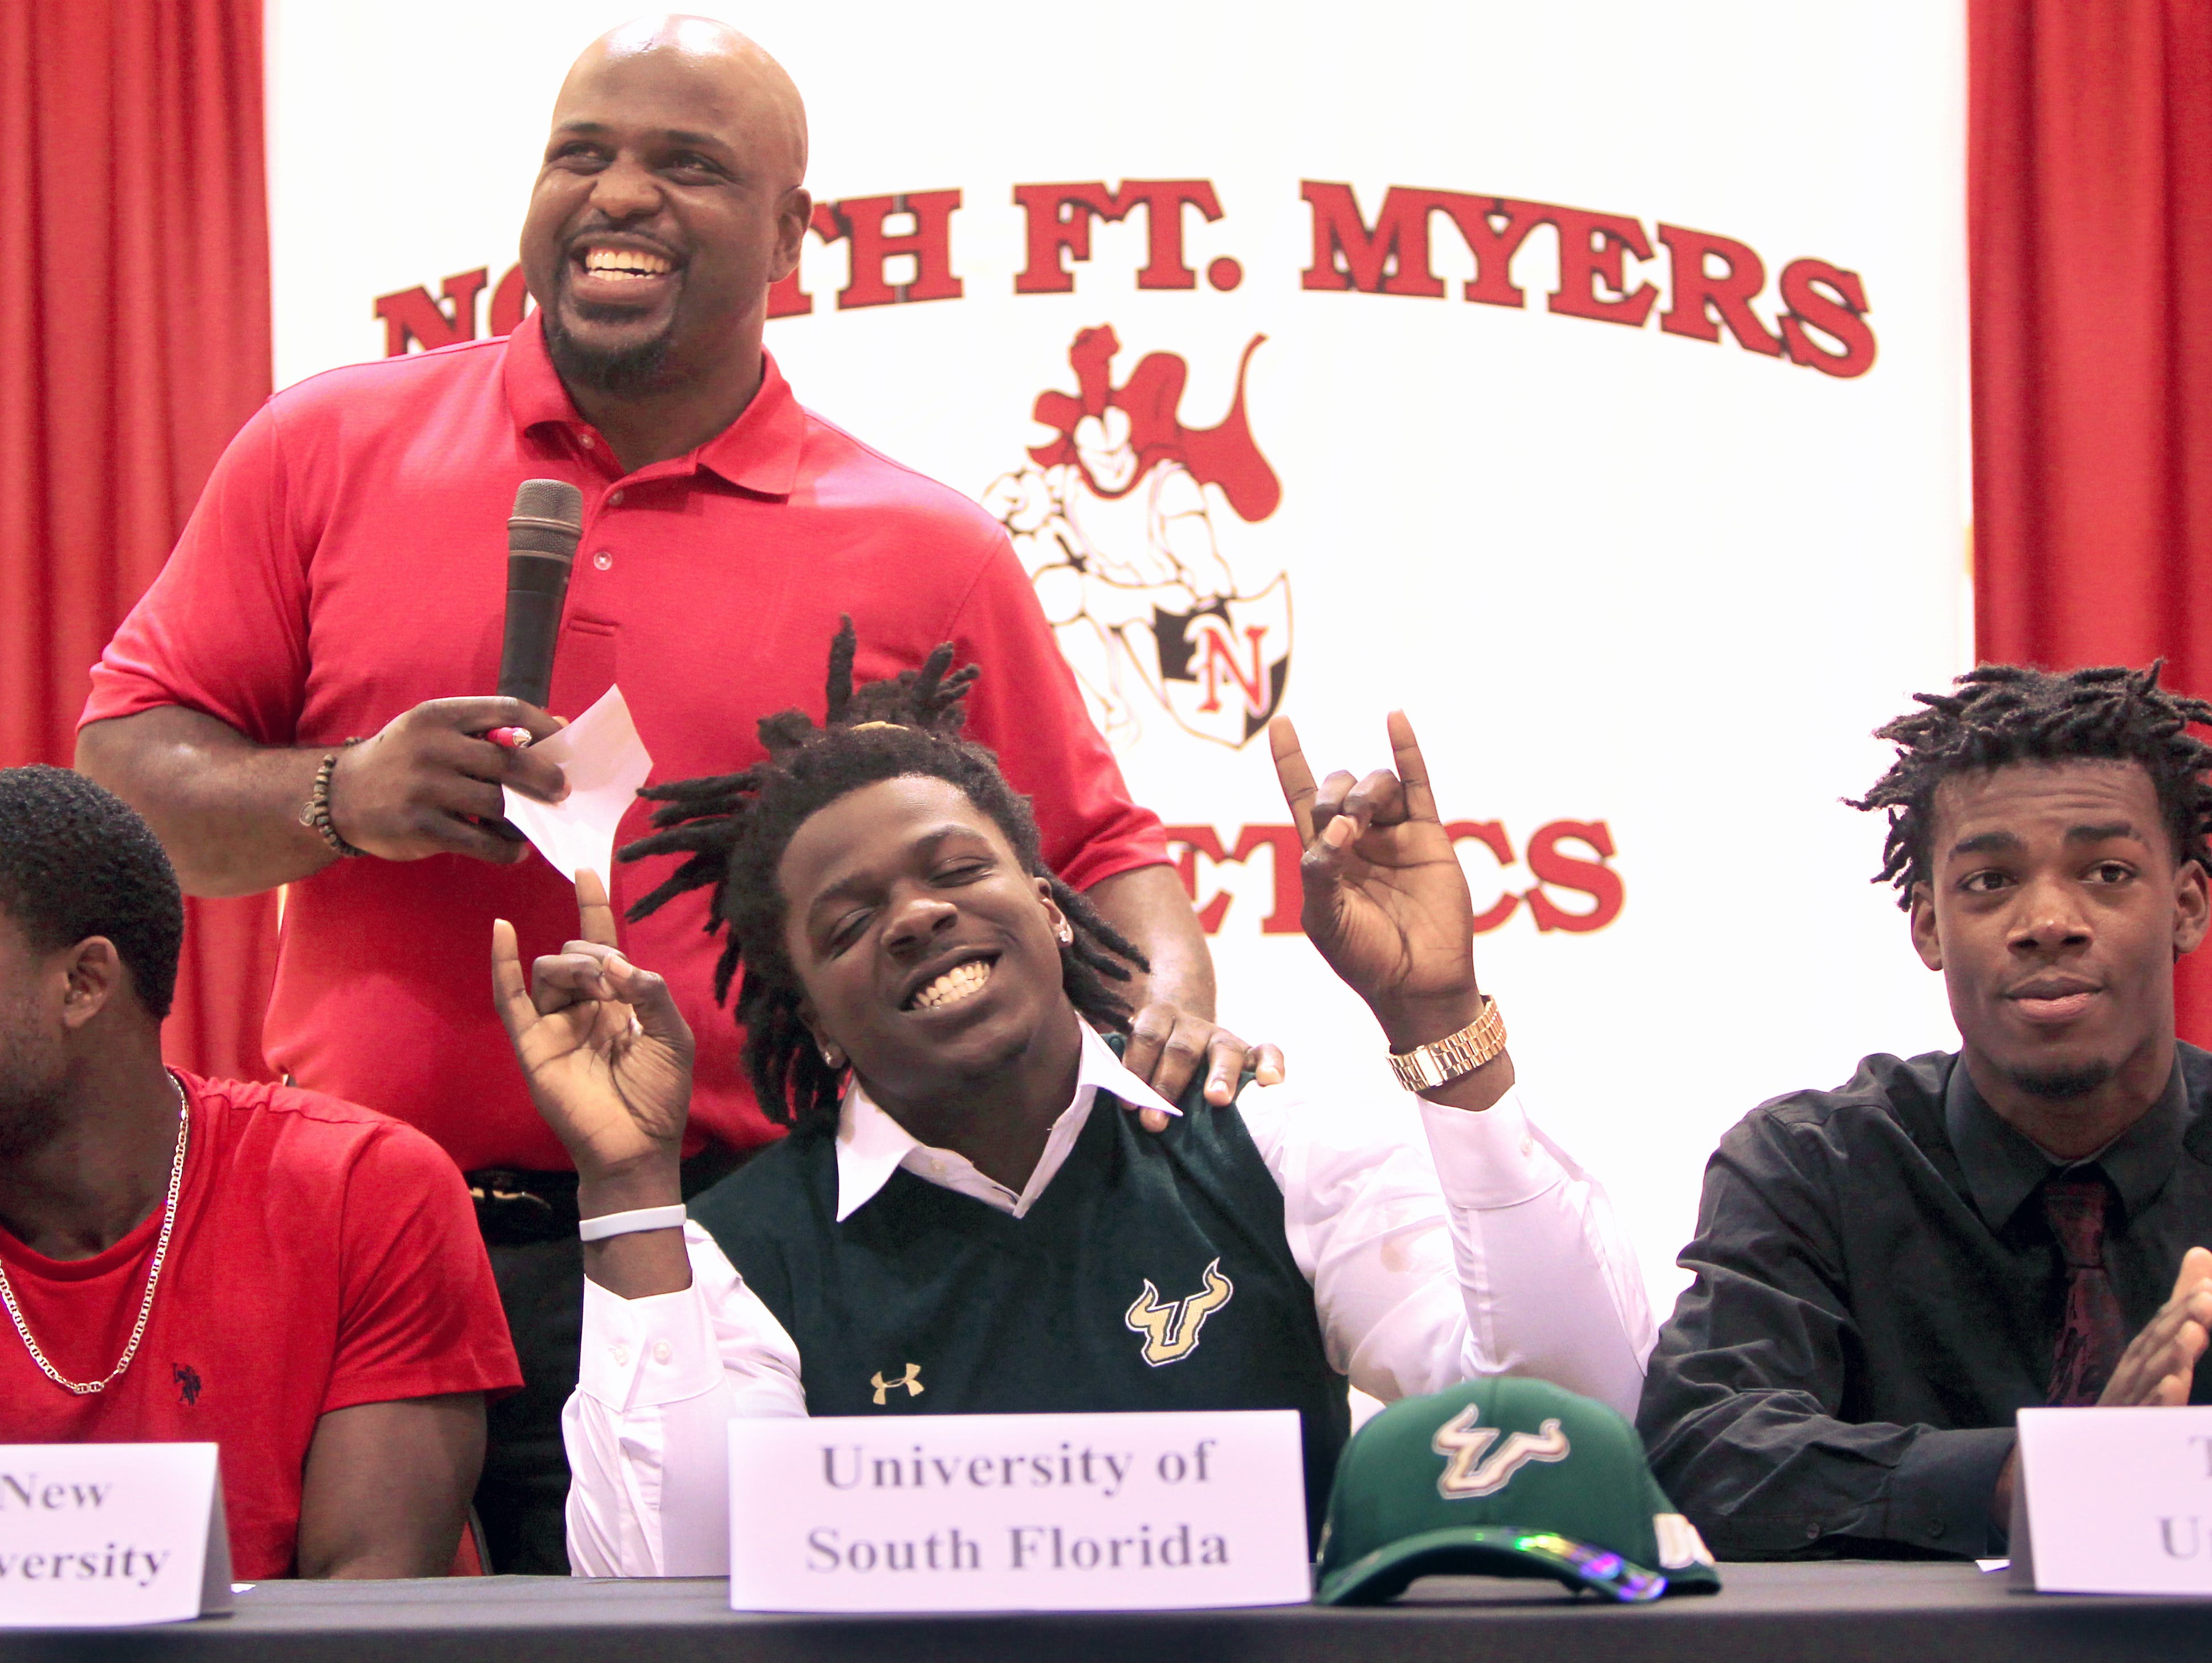 North Fort Myers head football coach Earnest Graham, top, celebrates football player Mi'Cario Stanley's commitment to the University of South Florida Wednesday during National Signing Day.